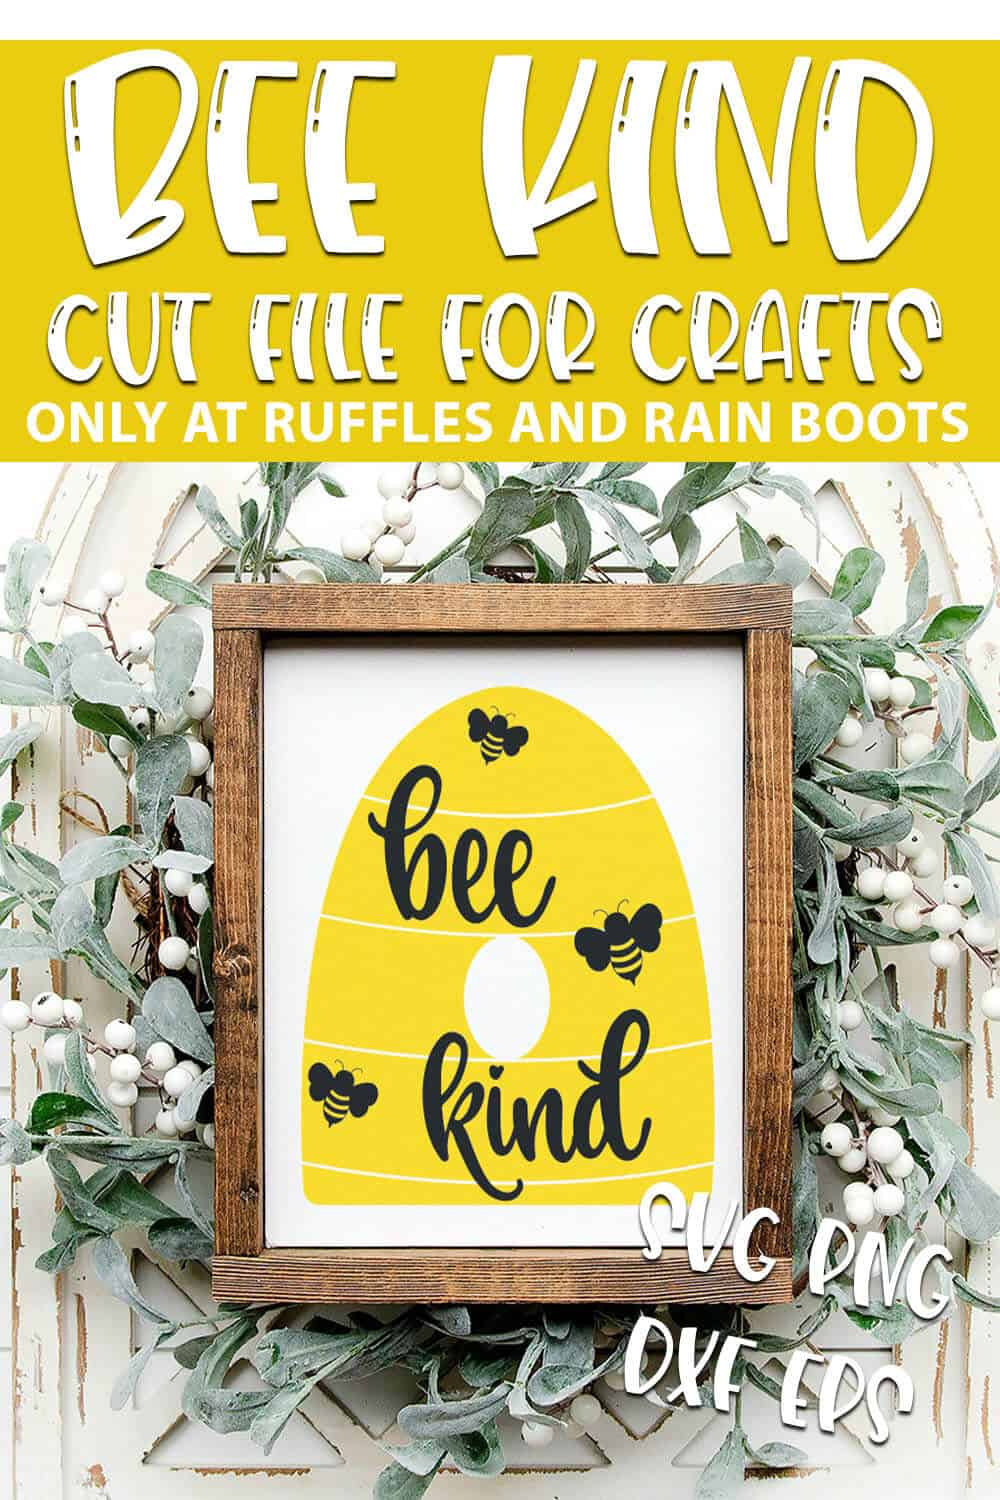 Be Kind SVG Images For cricut or silhouette with text which reads bee kind cut file for crafts